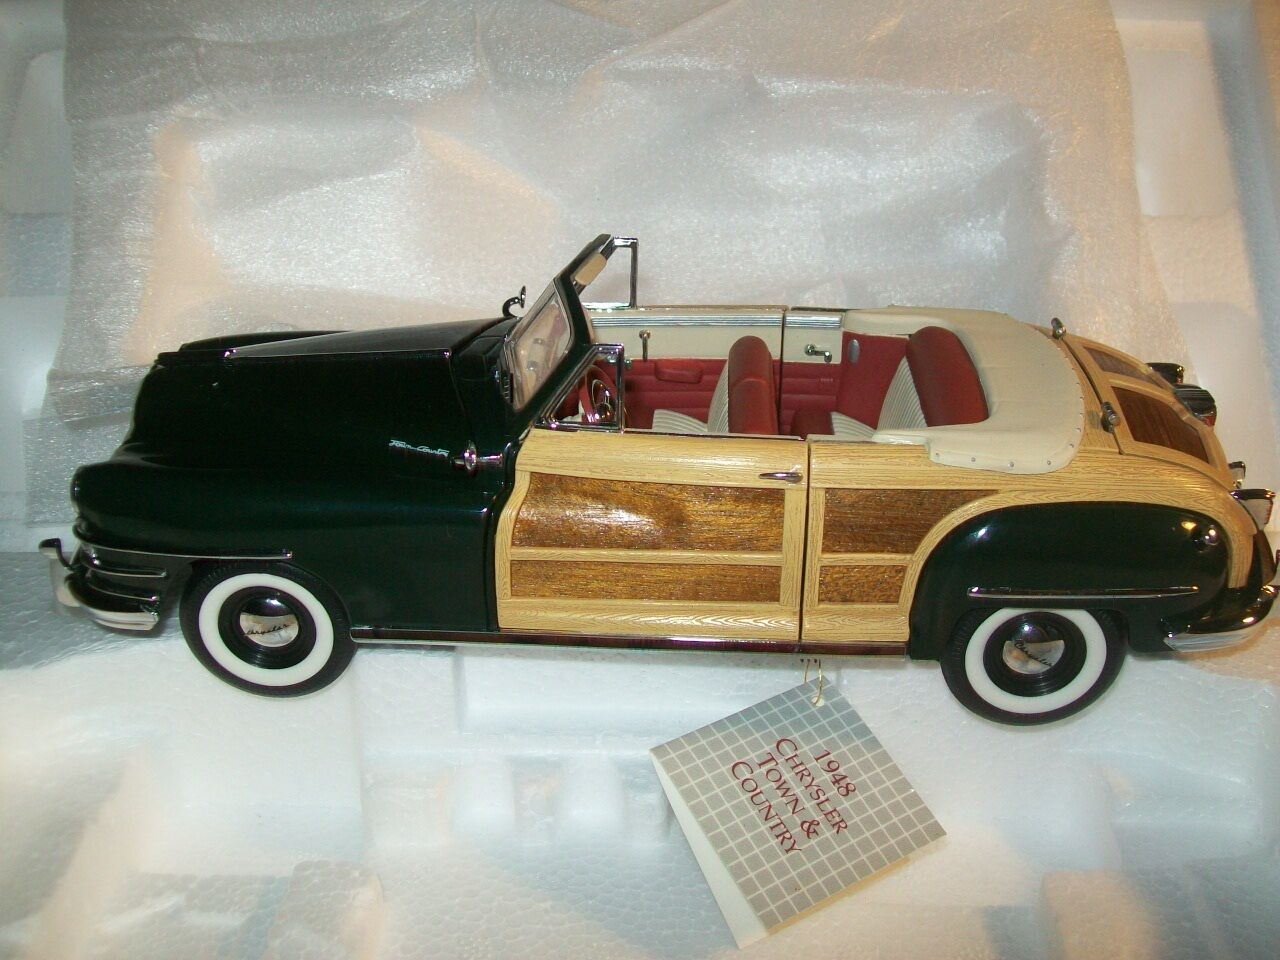 hermoso 1948 Chrysler Town and and and Country-Franklin Mint-Nuevo Caja  contador genuino